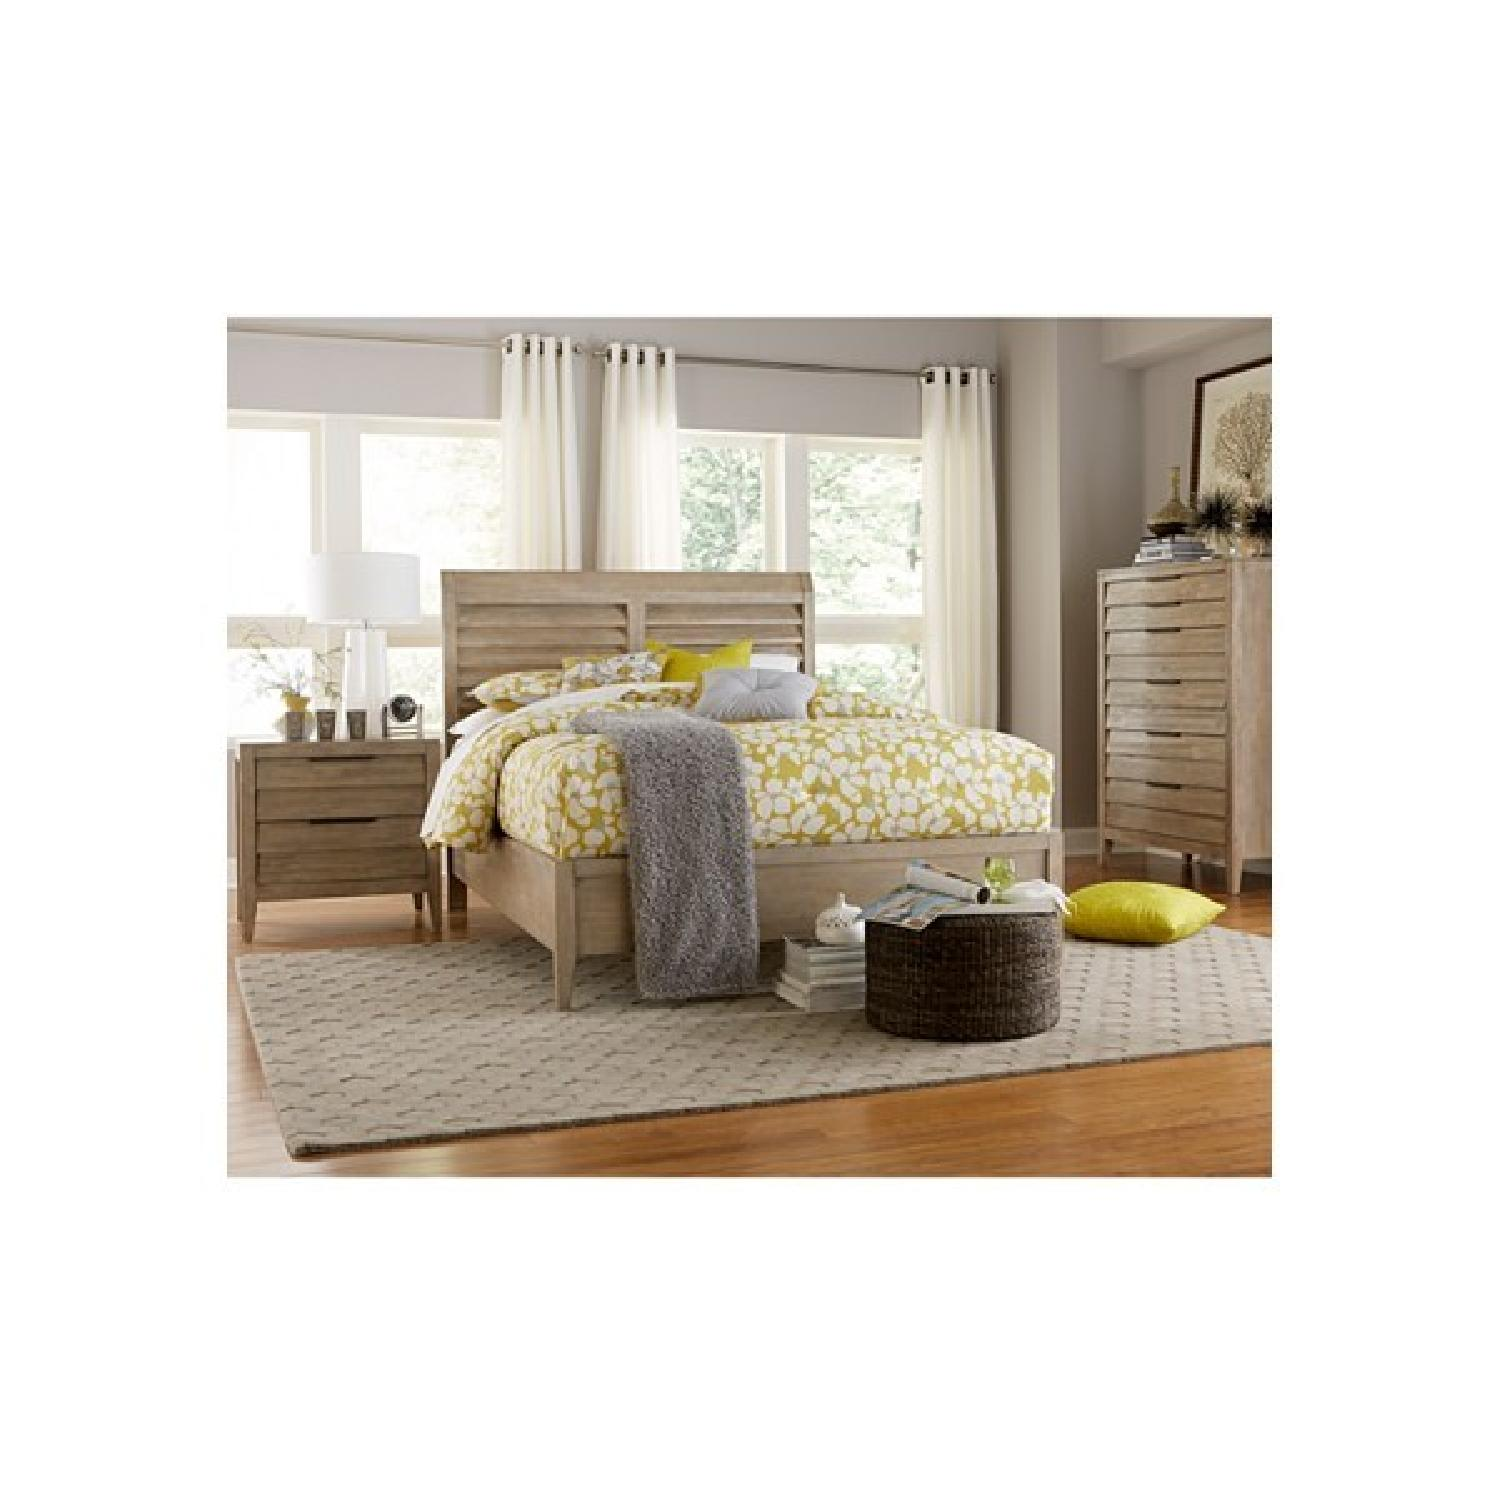 Macy's Acacia HardWood Natural Style Queen Bed Frame - image-4